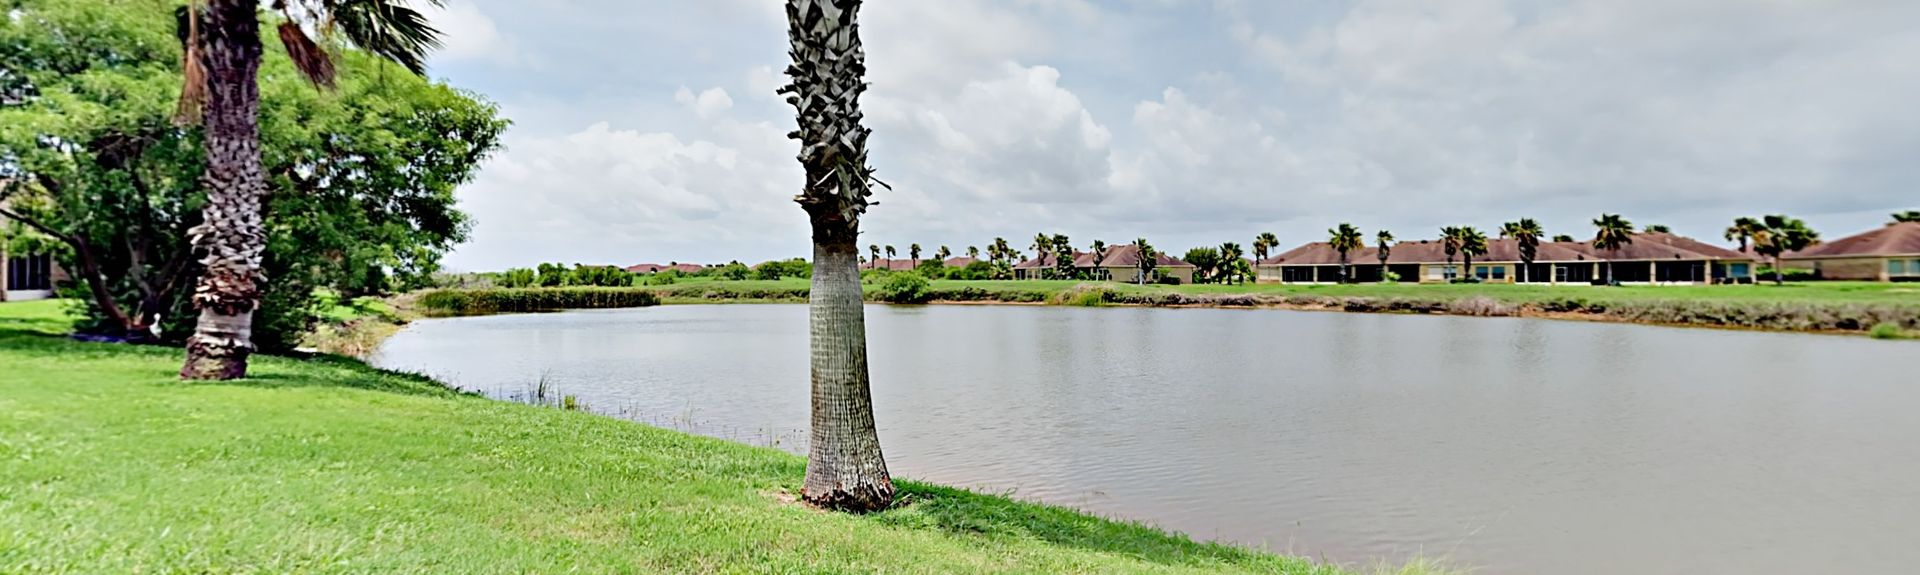 South Padre Island Golf Club, Port Isabel, Texas, États-Unis d'Amérique